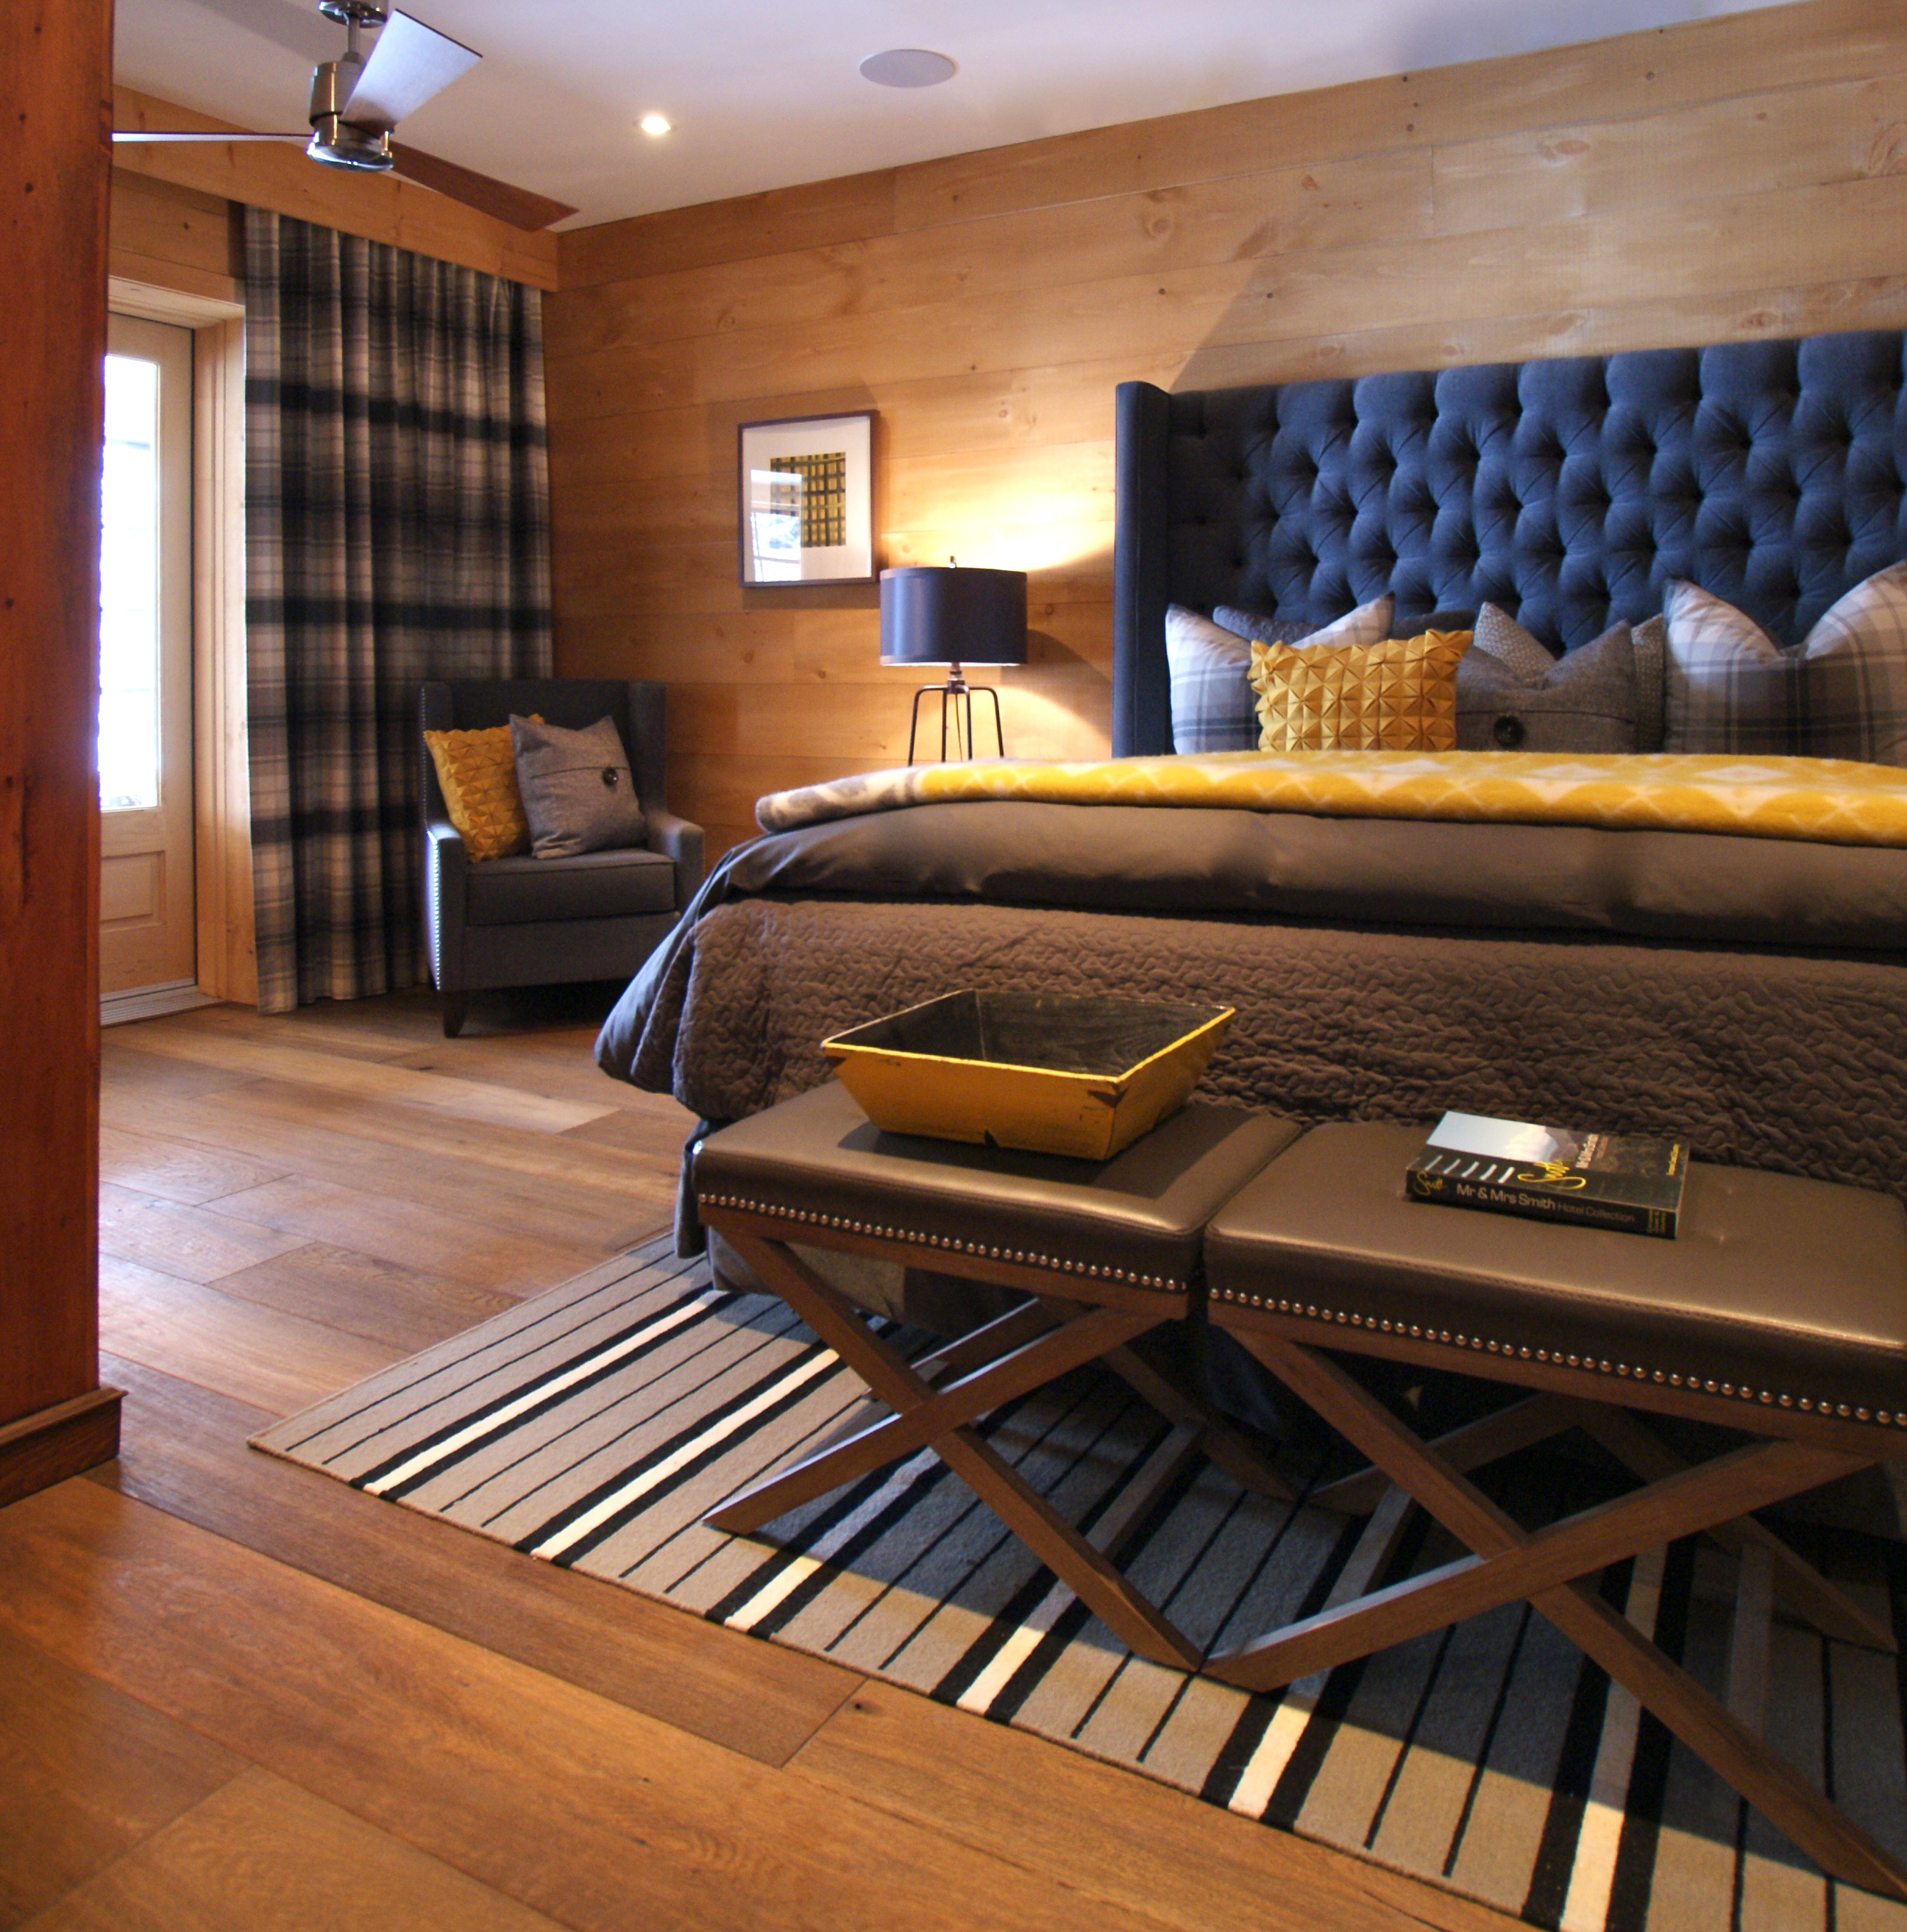 Great Small Living Room Designs By Colin Justin: The Basement Bedroom Reinvented